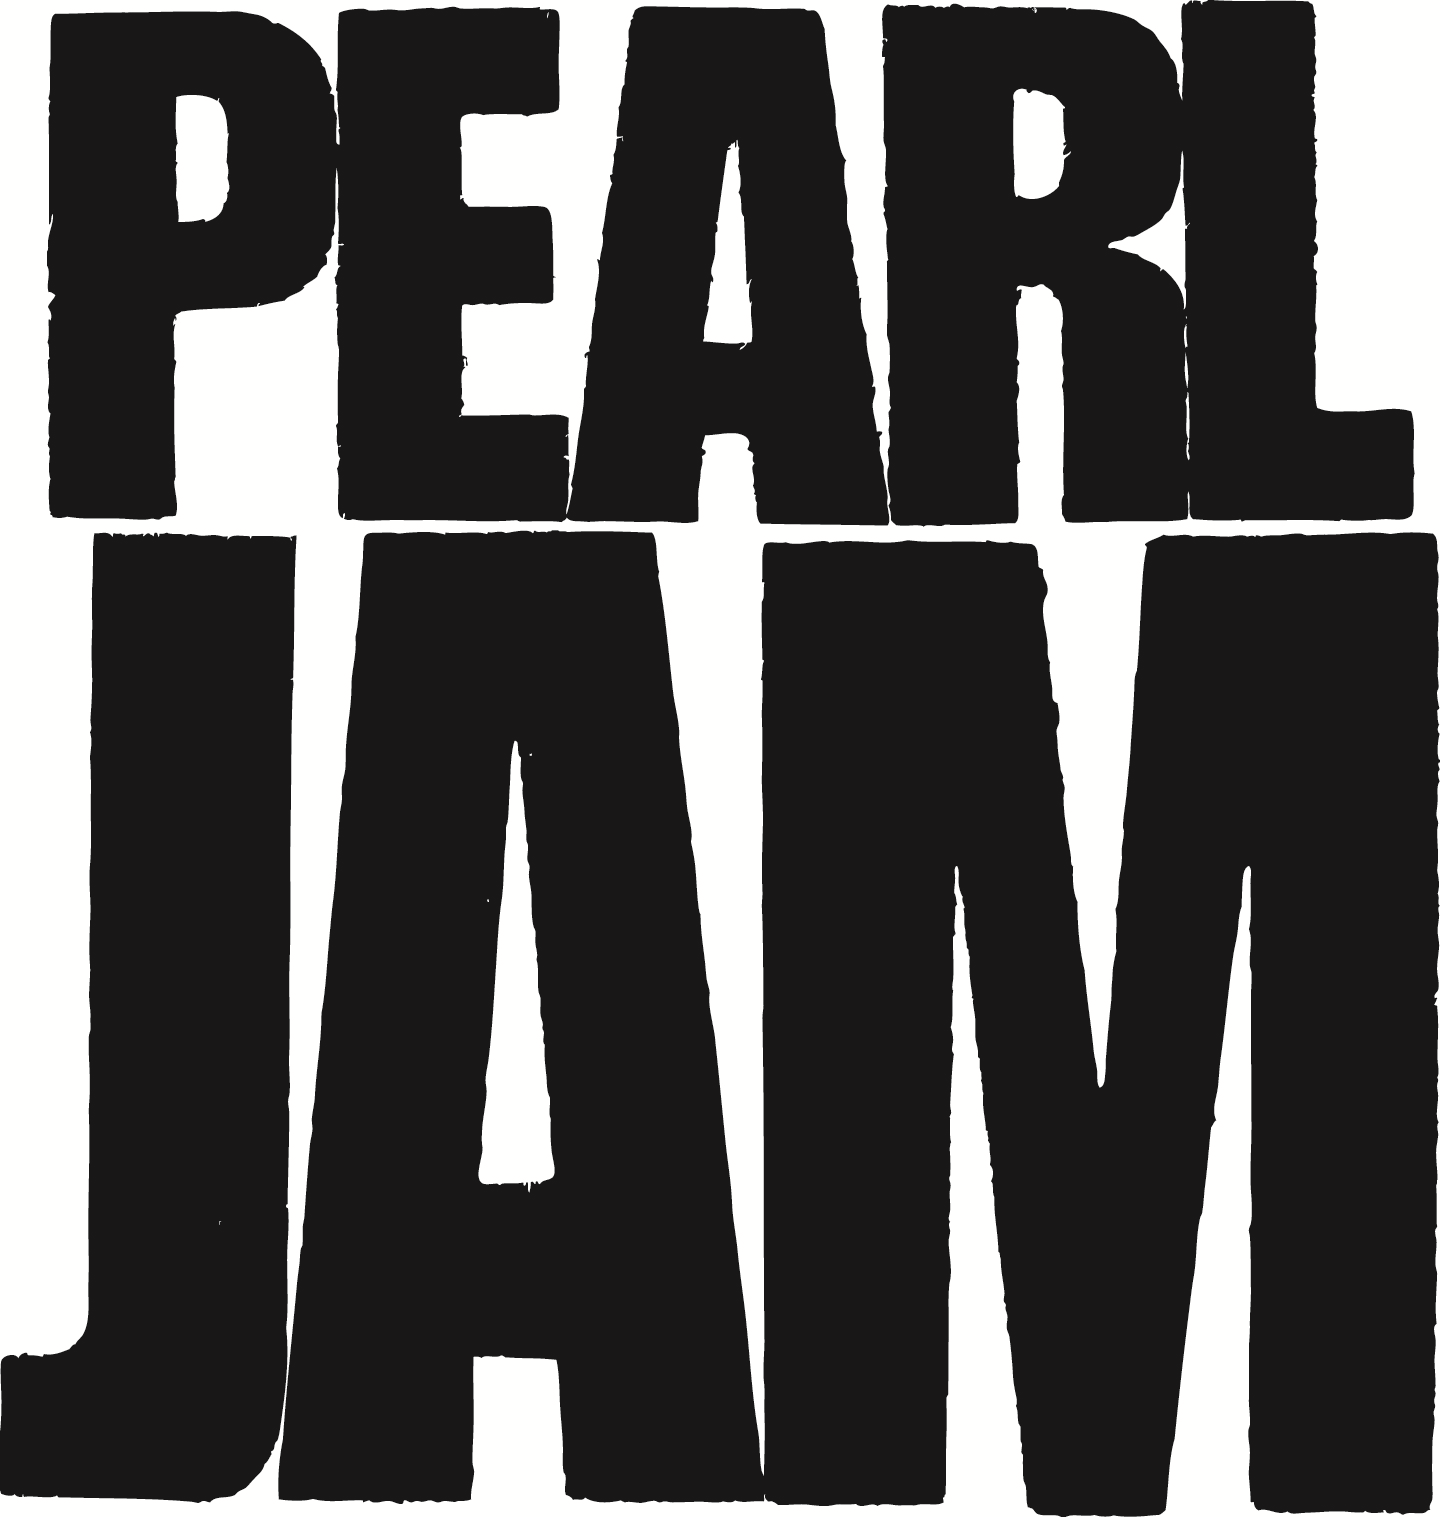 Pearl jam logo clipart clip black and white download Pearl Jam Stickman Wallpapers - Wallpaper Cave clip black and white download